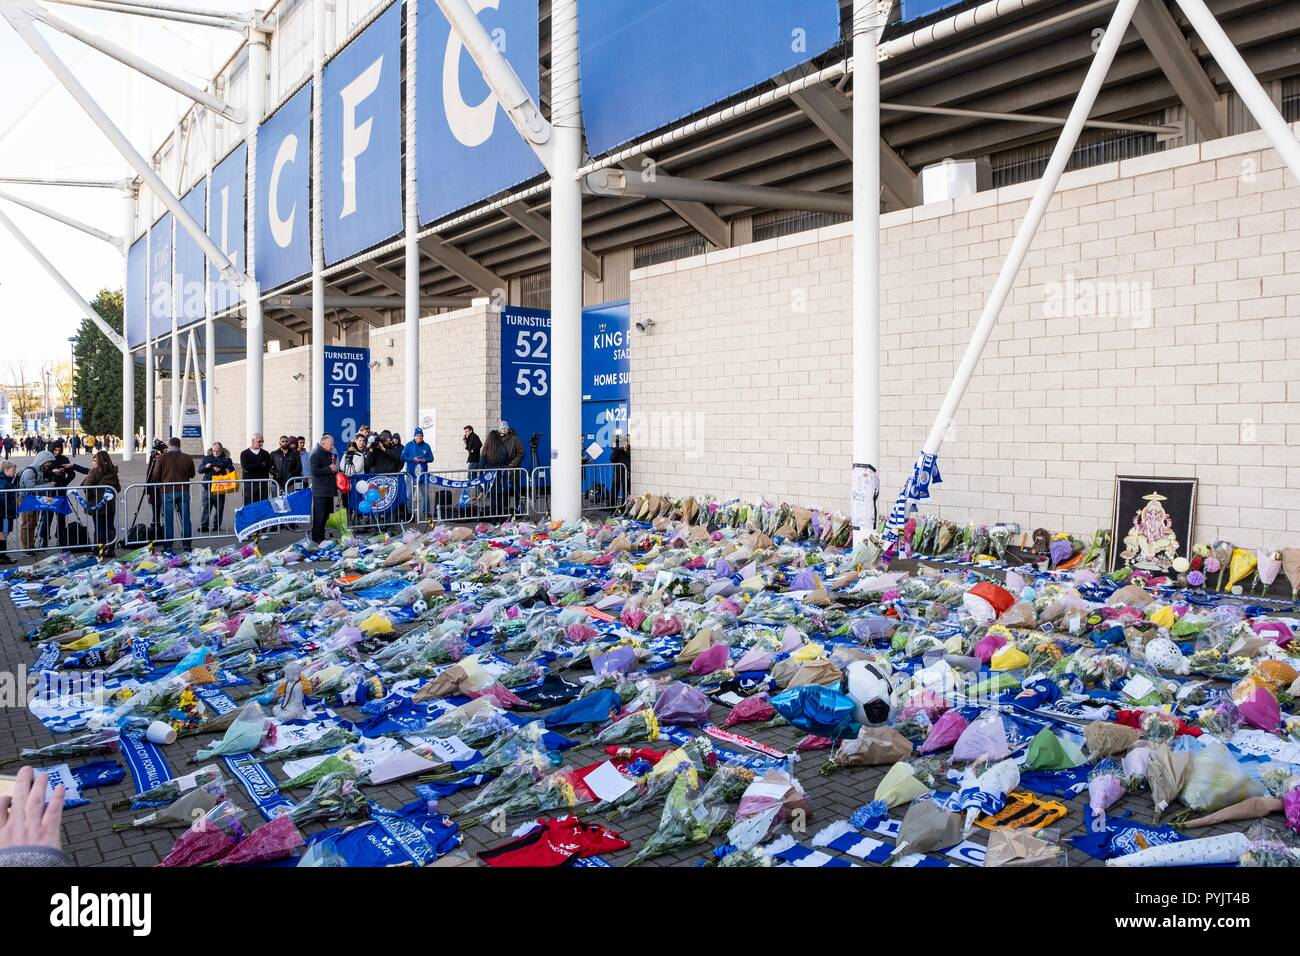 Leicester, UK. 28th Oct 2018. Football fans left tributes and flowers outside Leicester City's King Power Stadium on Sunday, October 28, 2018 after a helicopter carrying the owner of the football club, Vichai Srivaddhanaprabha, crashed shortly after taking off from the stadium. It was later announced that Mr Srivaddhanaprabha and four others were killed in the crash. Credit: Christopher Middleton/Alamy Live News - Stock Image